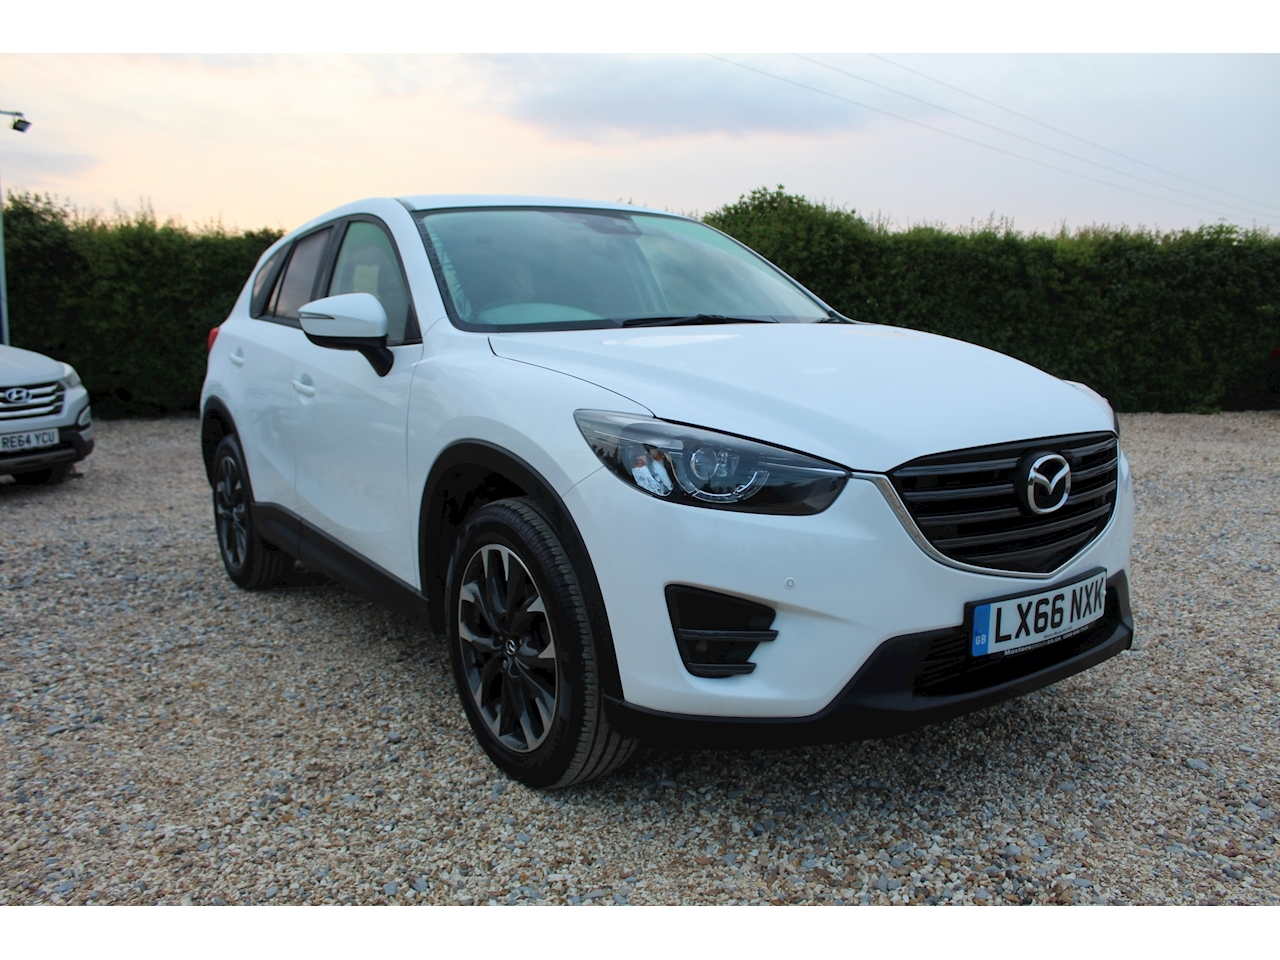 Mazda Cx-5 D Sport Nav Estate 2.2 Automatic Diesel